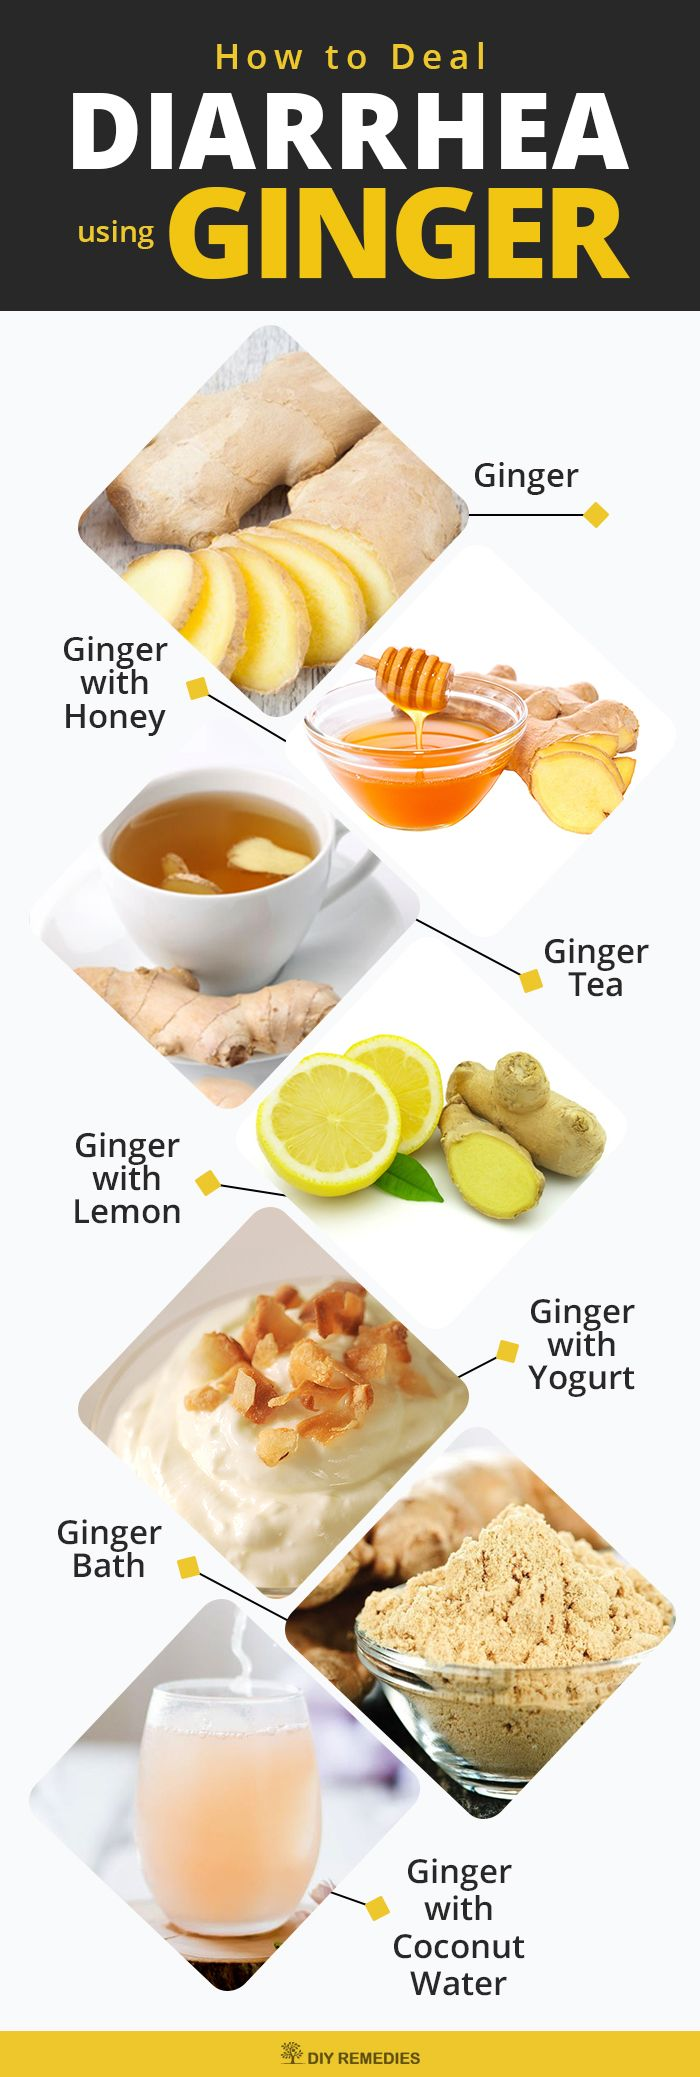 How To Deal Diarrhea Using Ginger Ginger Not Only Effectively Used To Treat  Diarrhea But Also